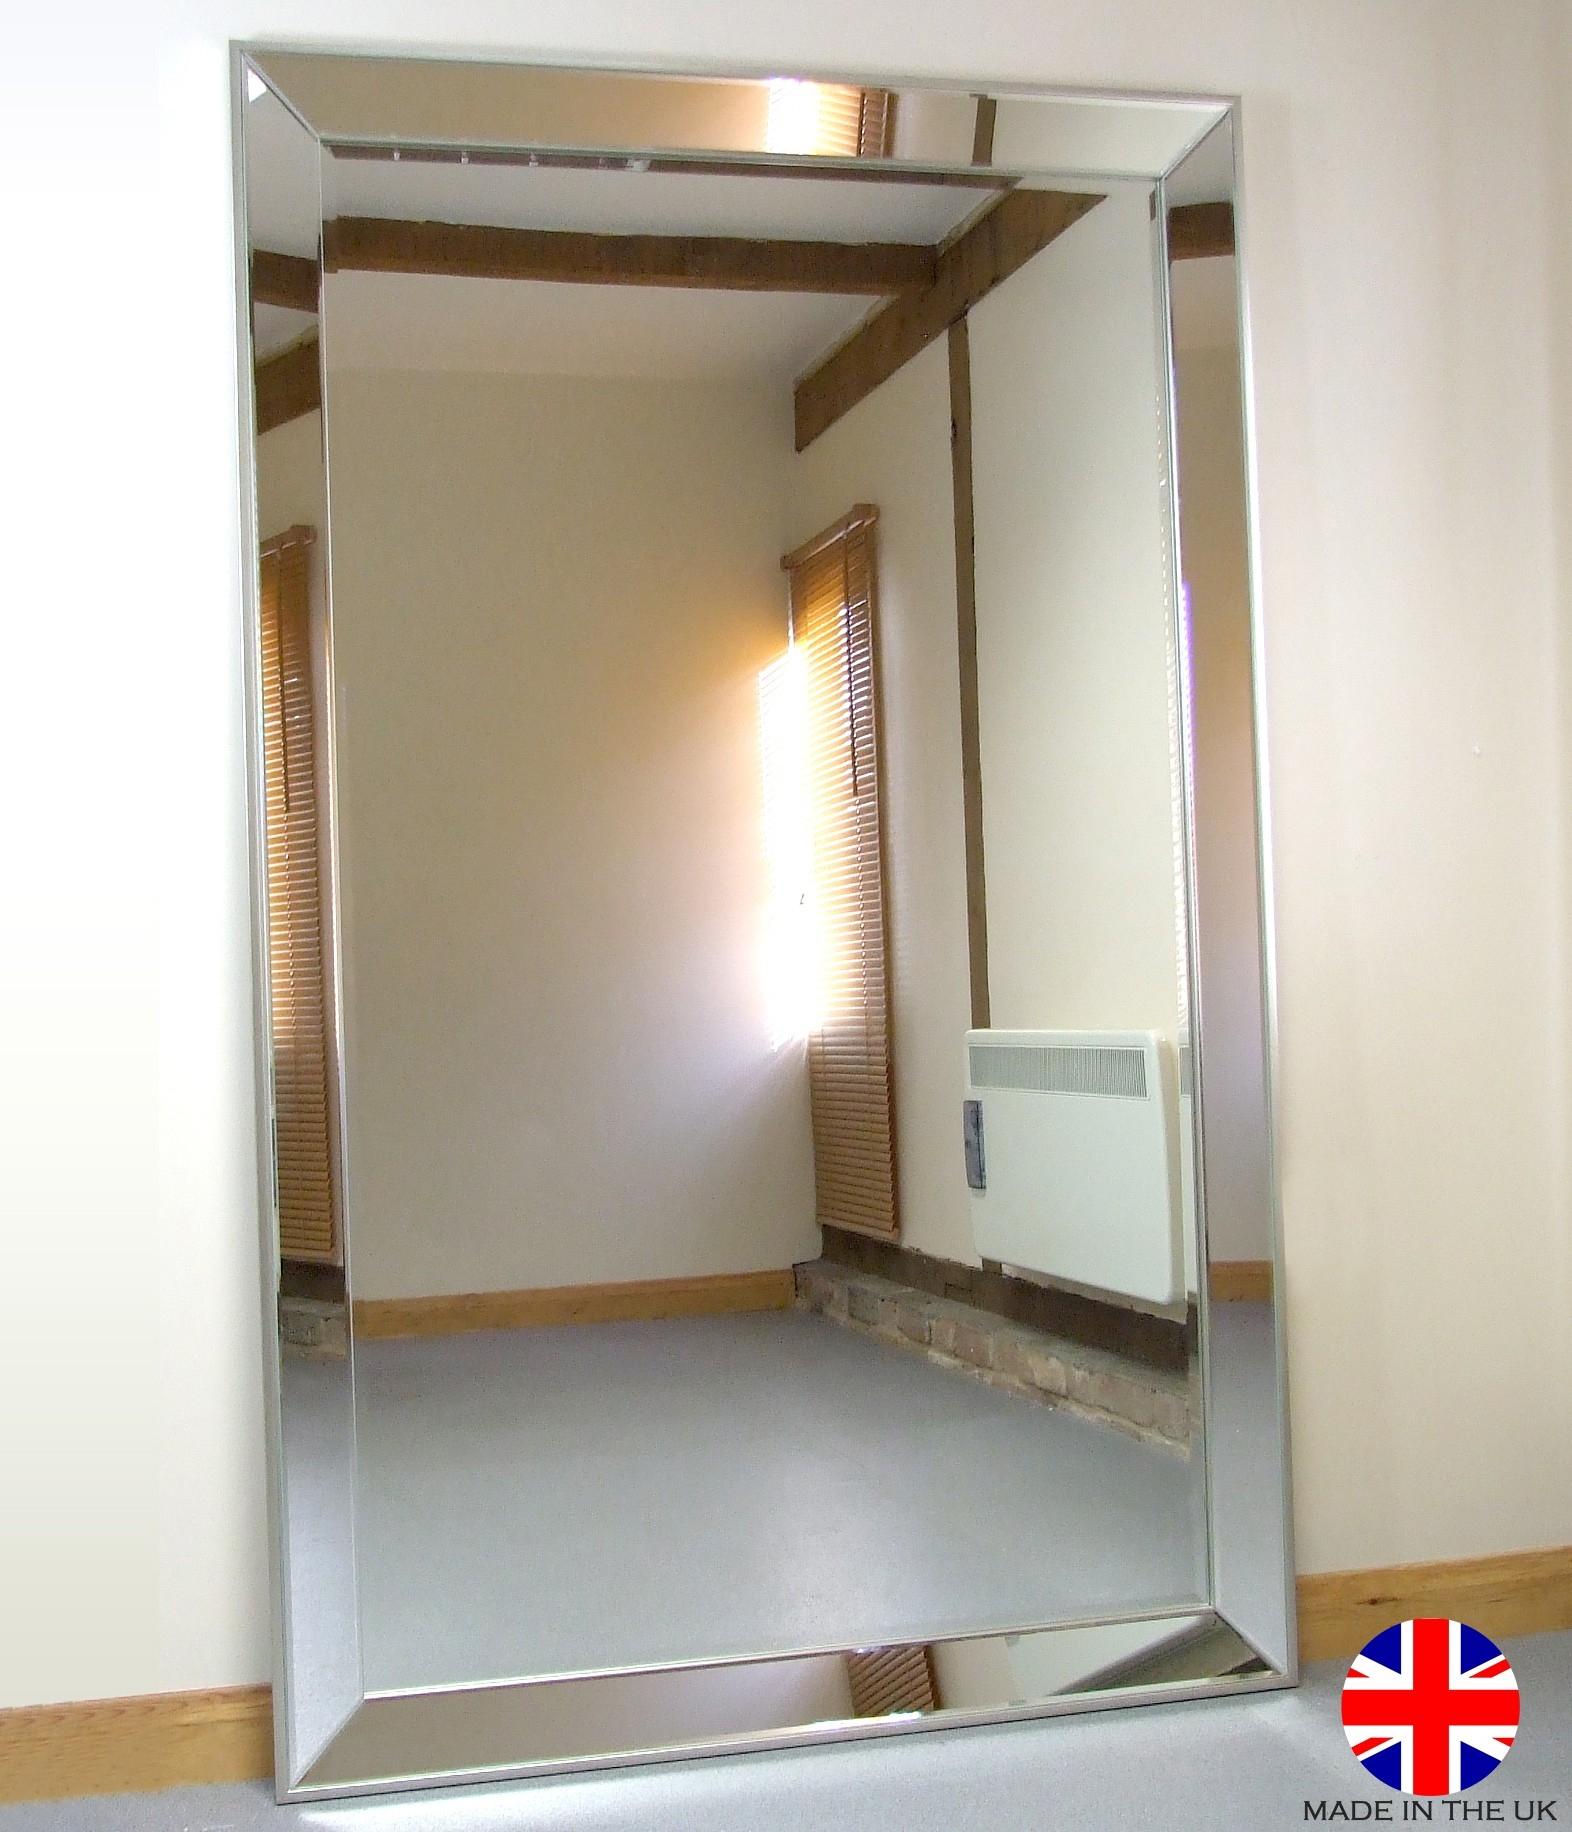 Hallway Mirrors Most Widely Used Home Design Regarding Large Bevelled Edge Mirror (Image 3 of 15)